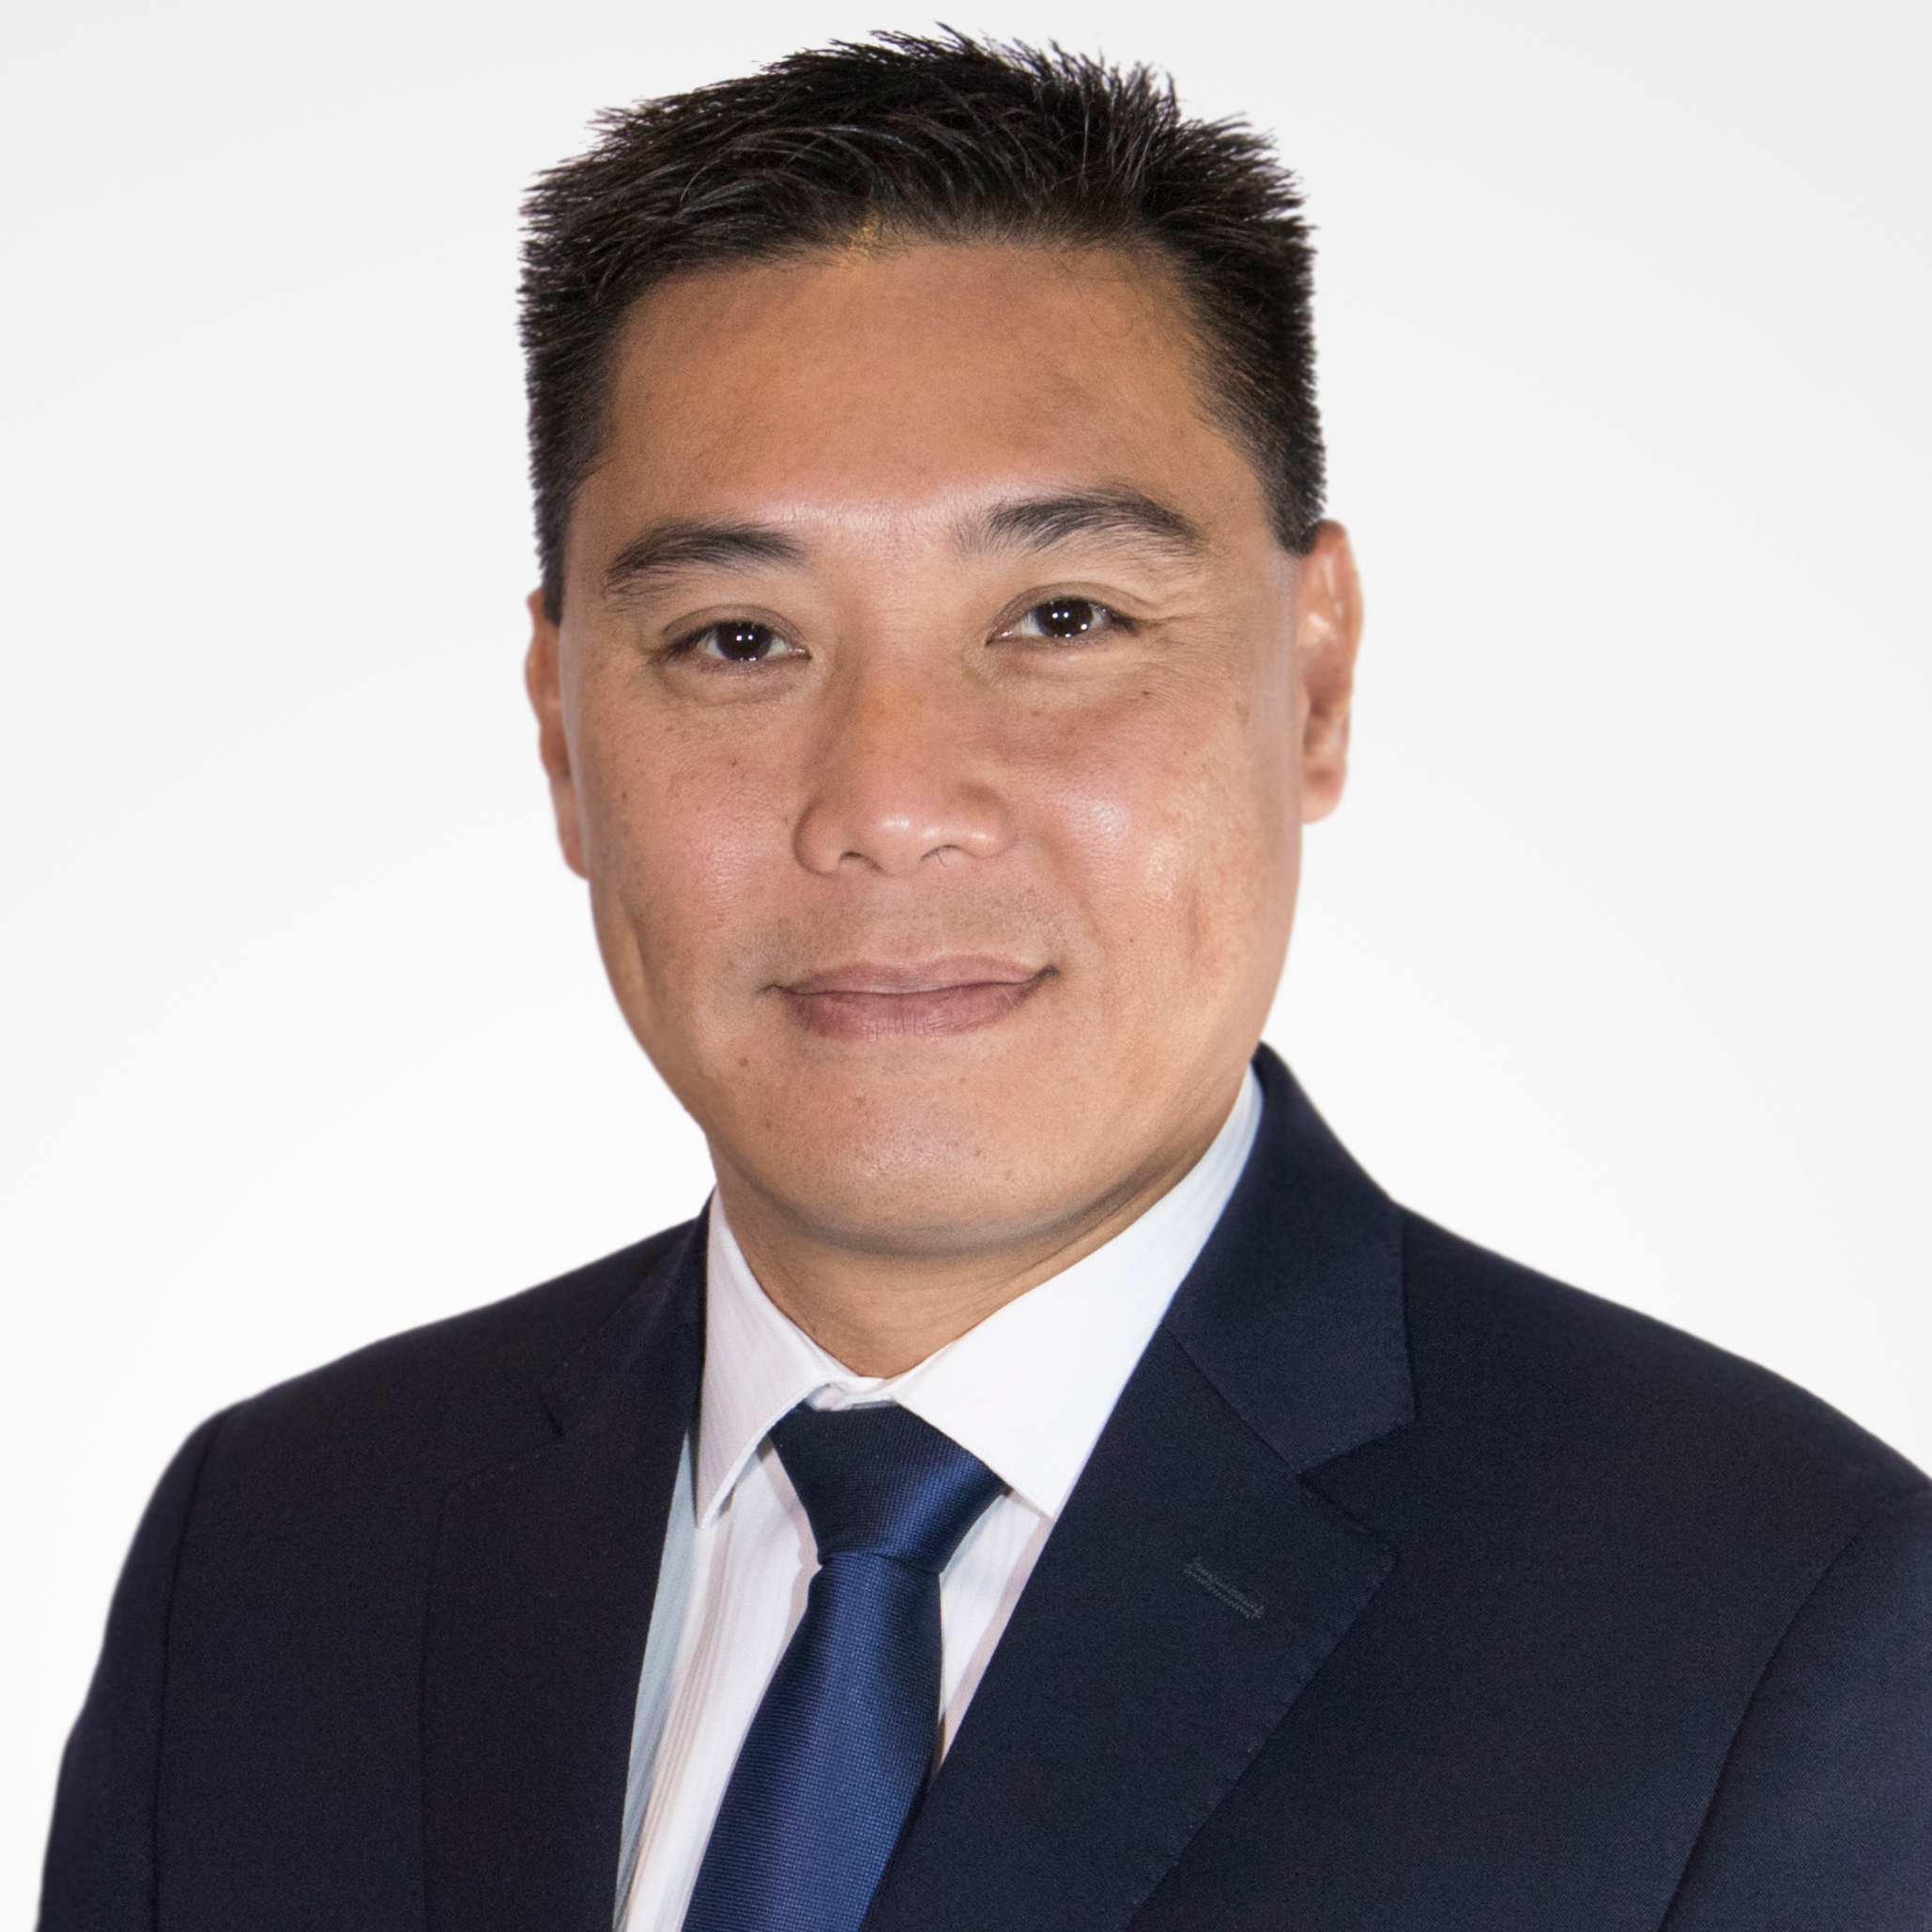 Kong Kam Yean, Vice President, International Business at Electronics, ST Engineering